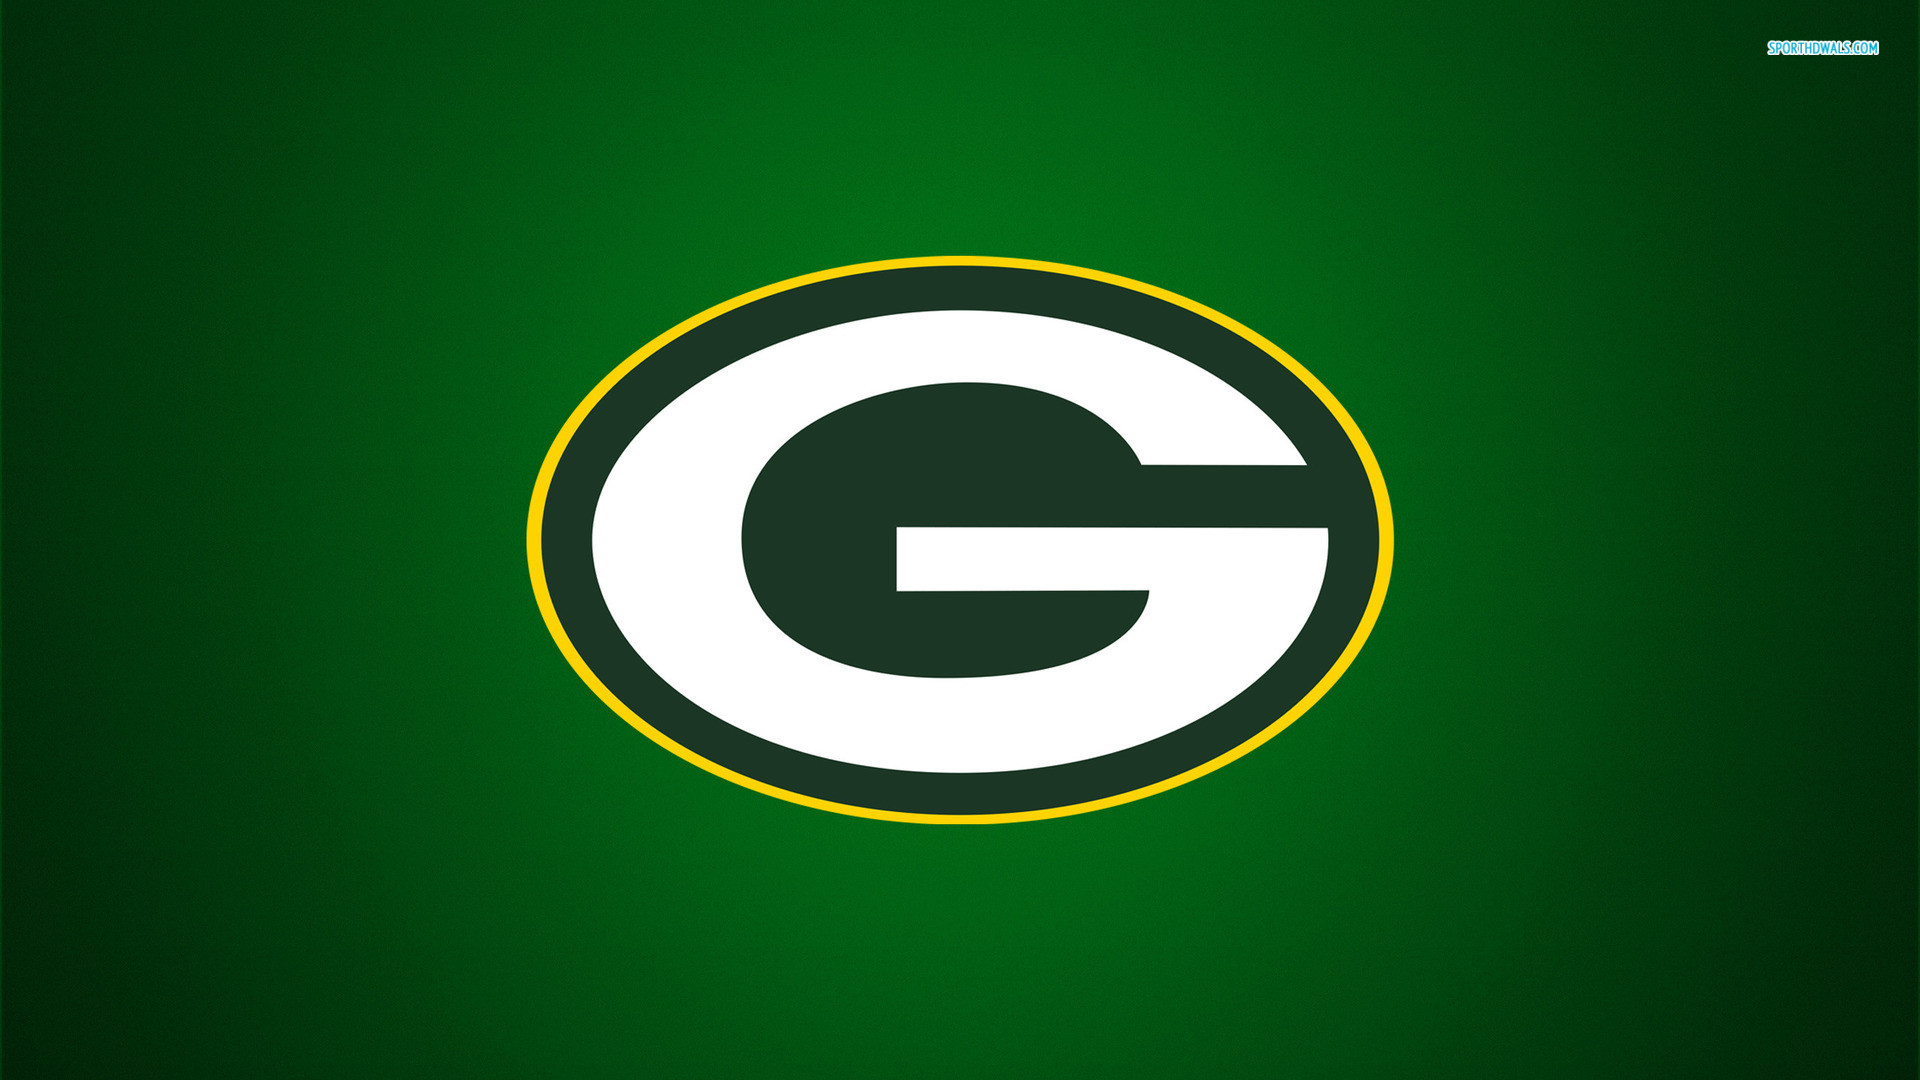 Green Bay Packers Wallpaper | Chainimage